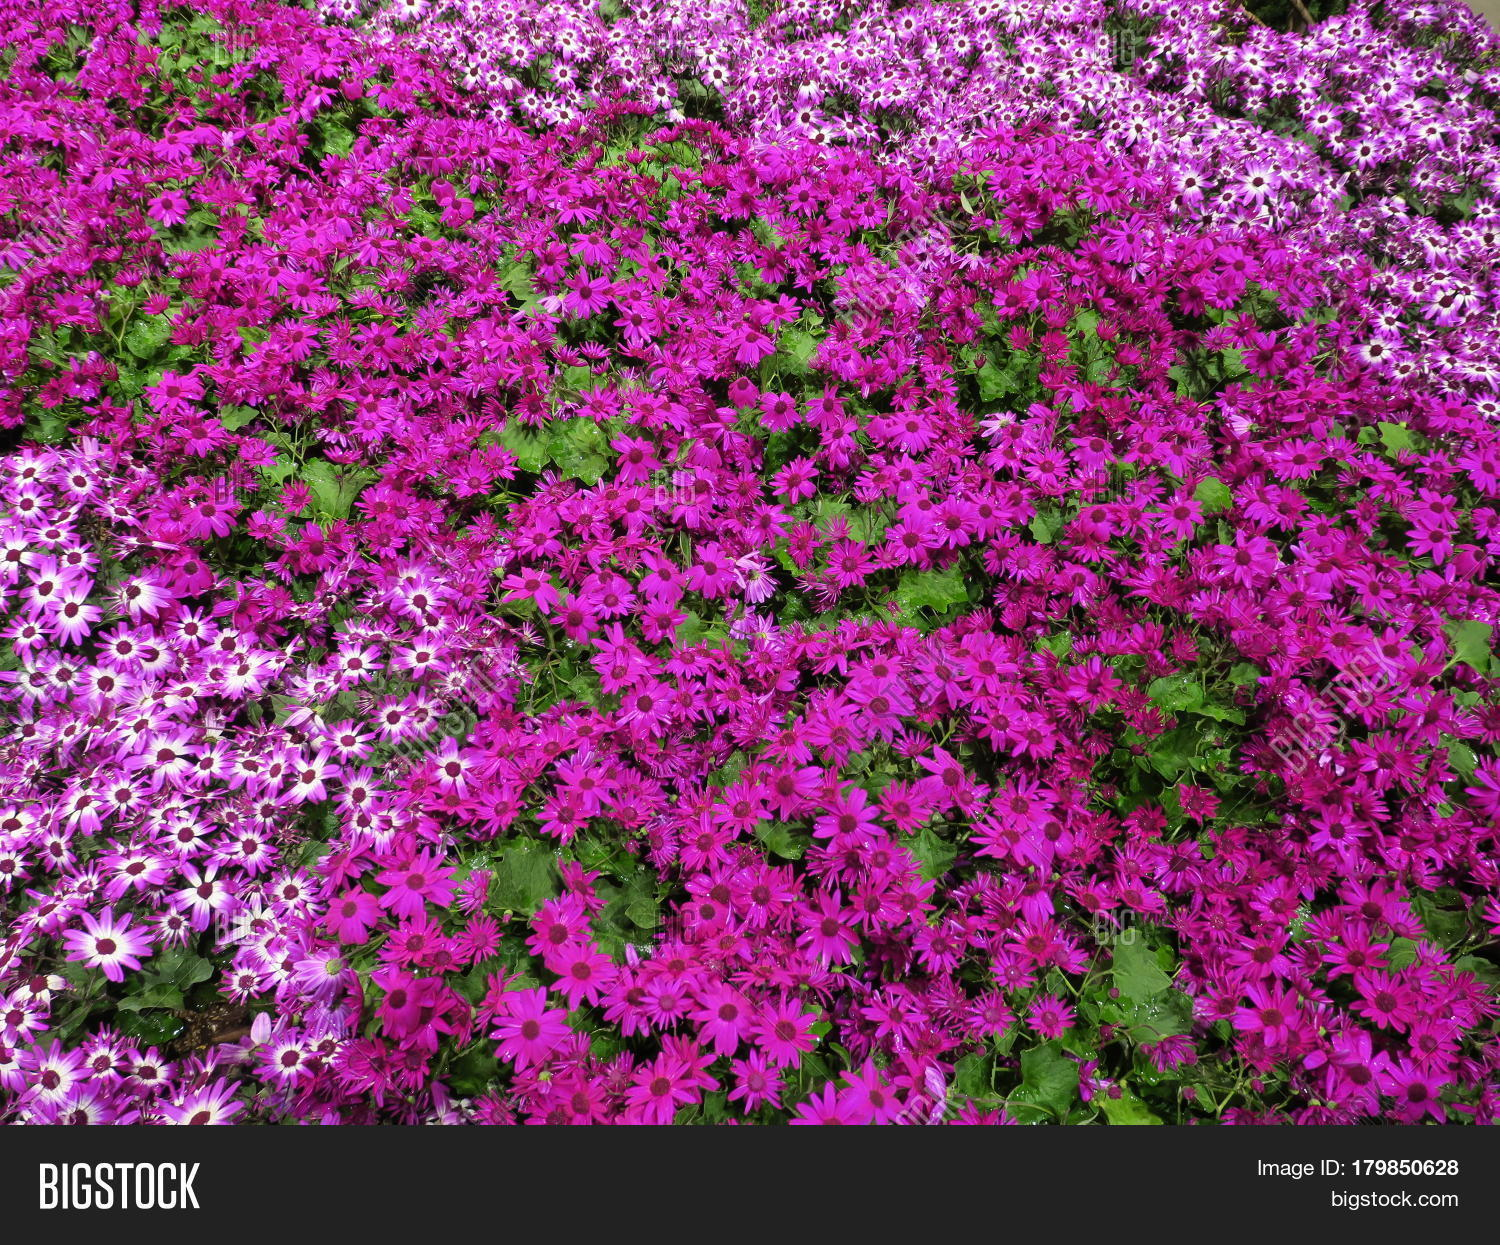 Beautiful Flowers Chicago Home Image Photo Bigstock